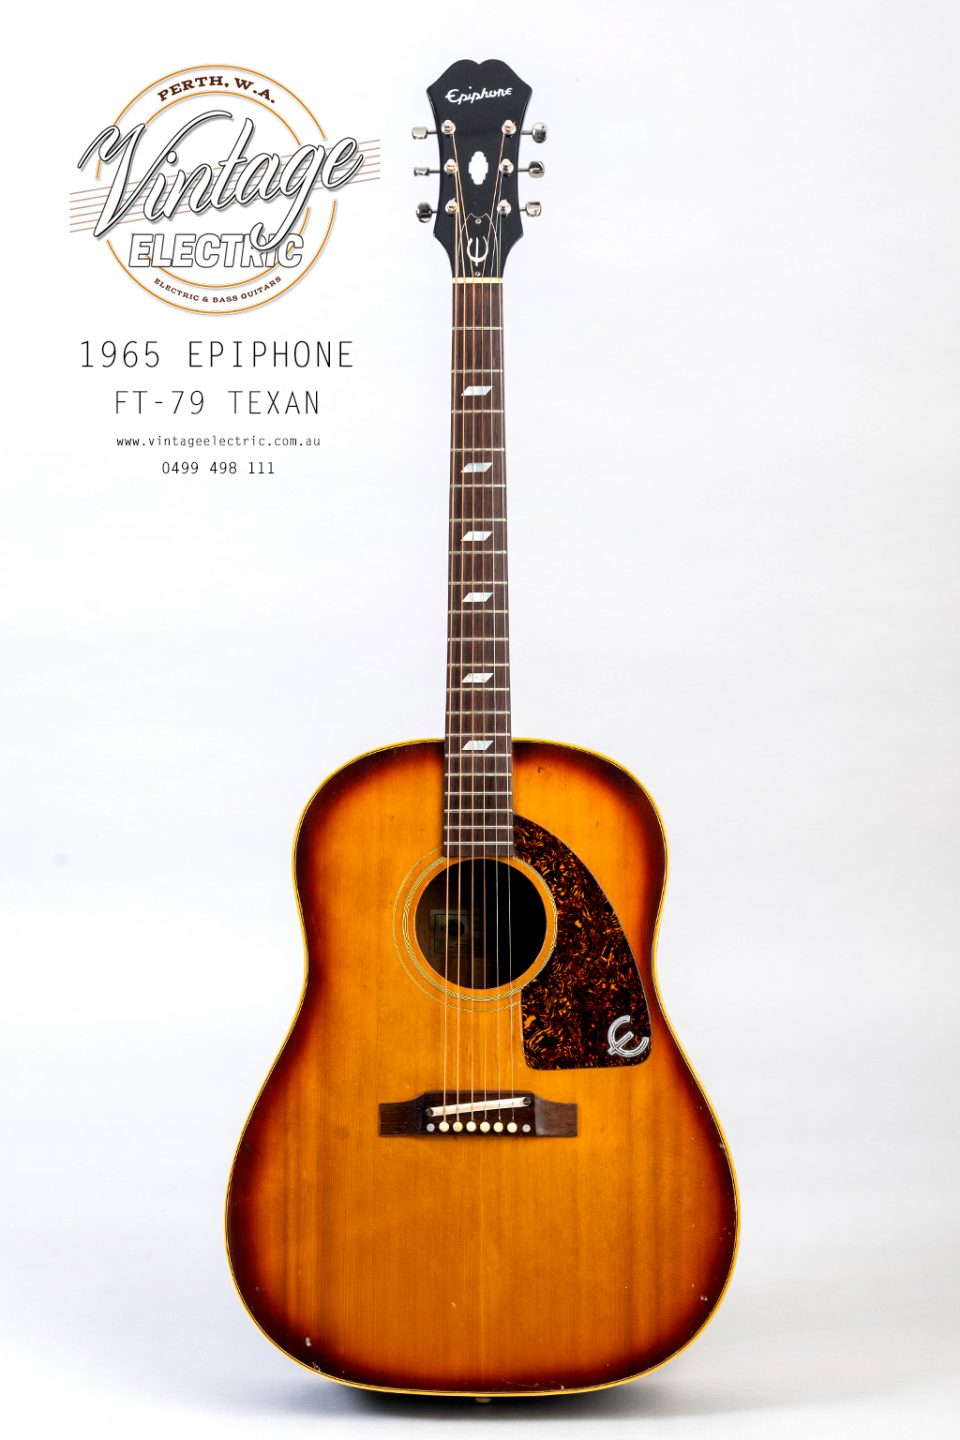 1965 Epiphone Texan FT79 Acoustic USA